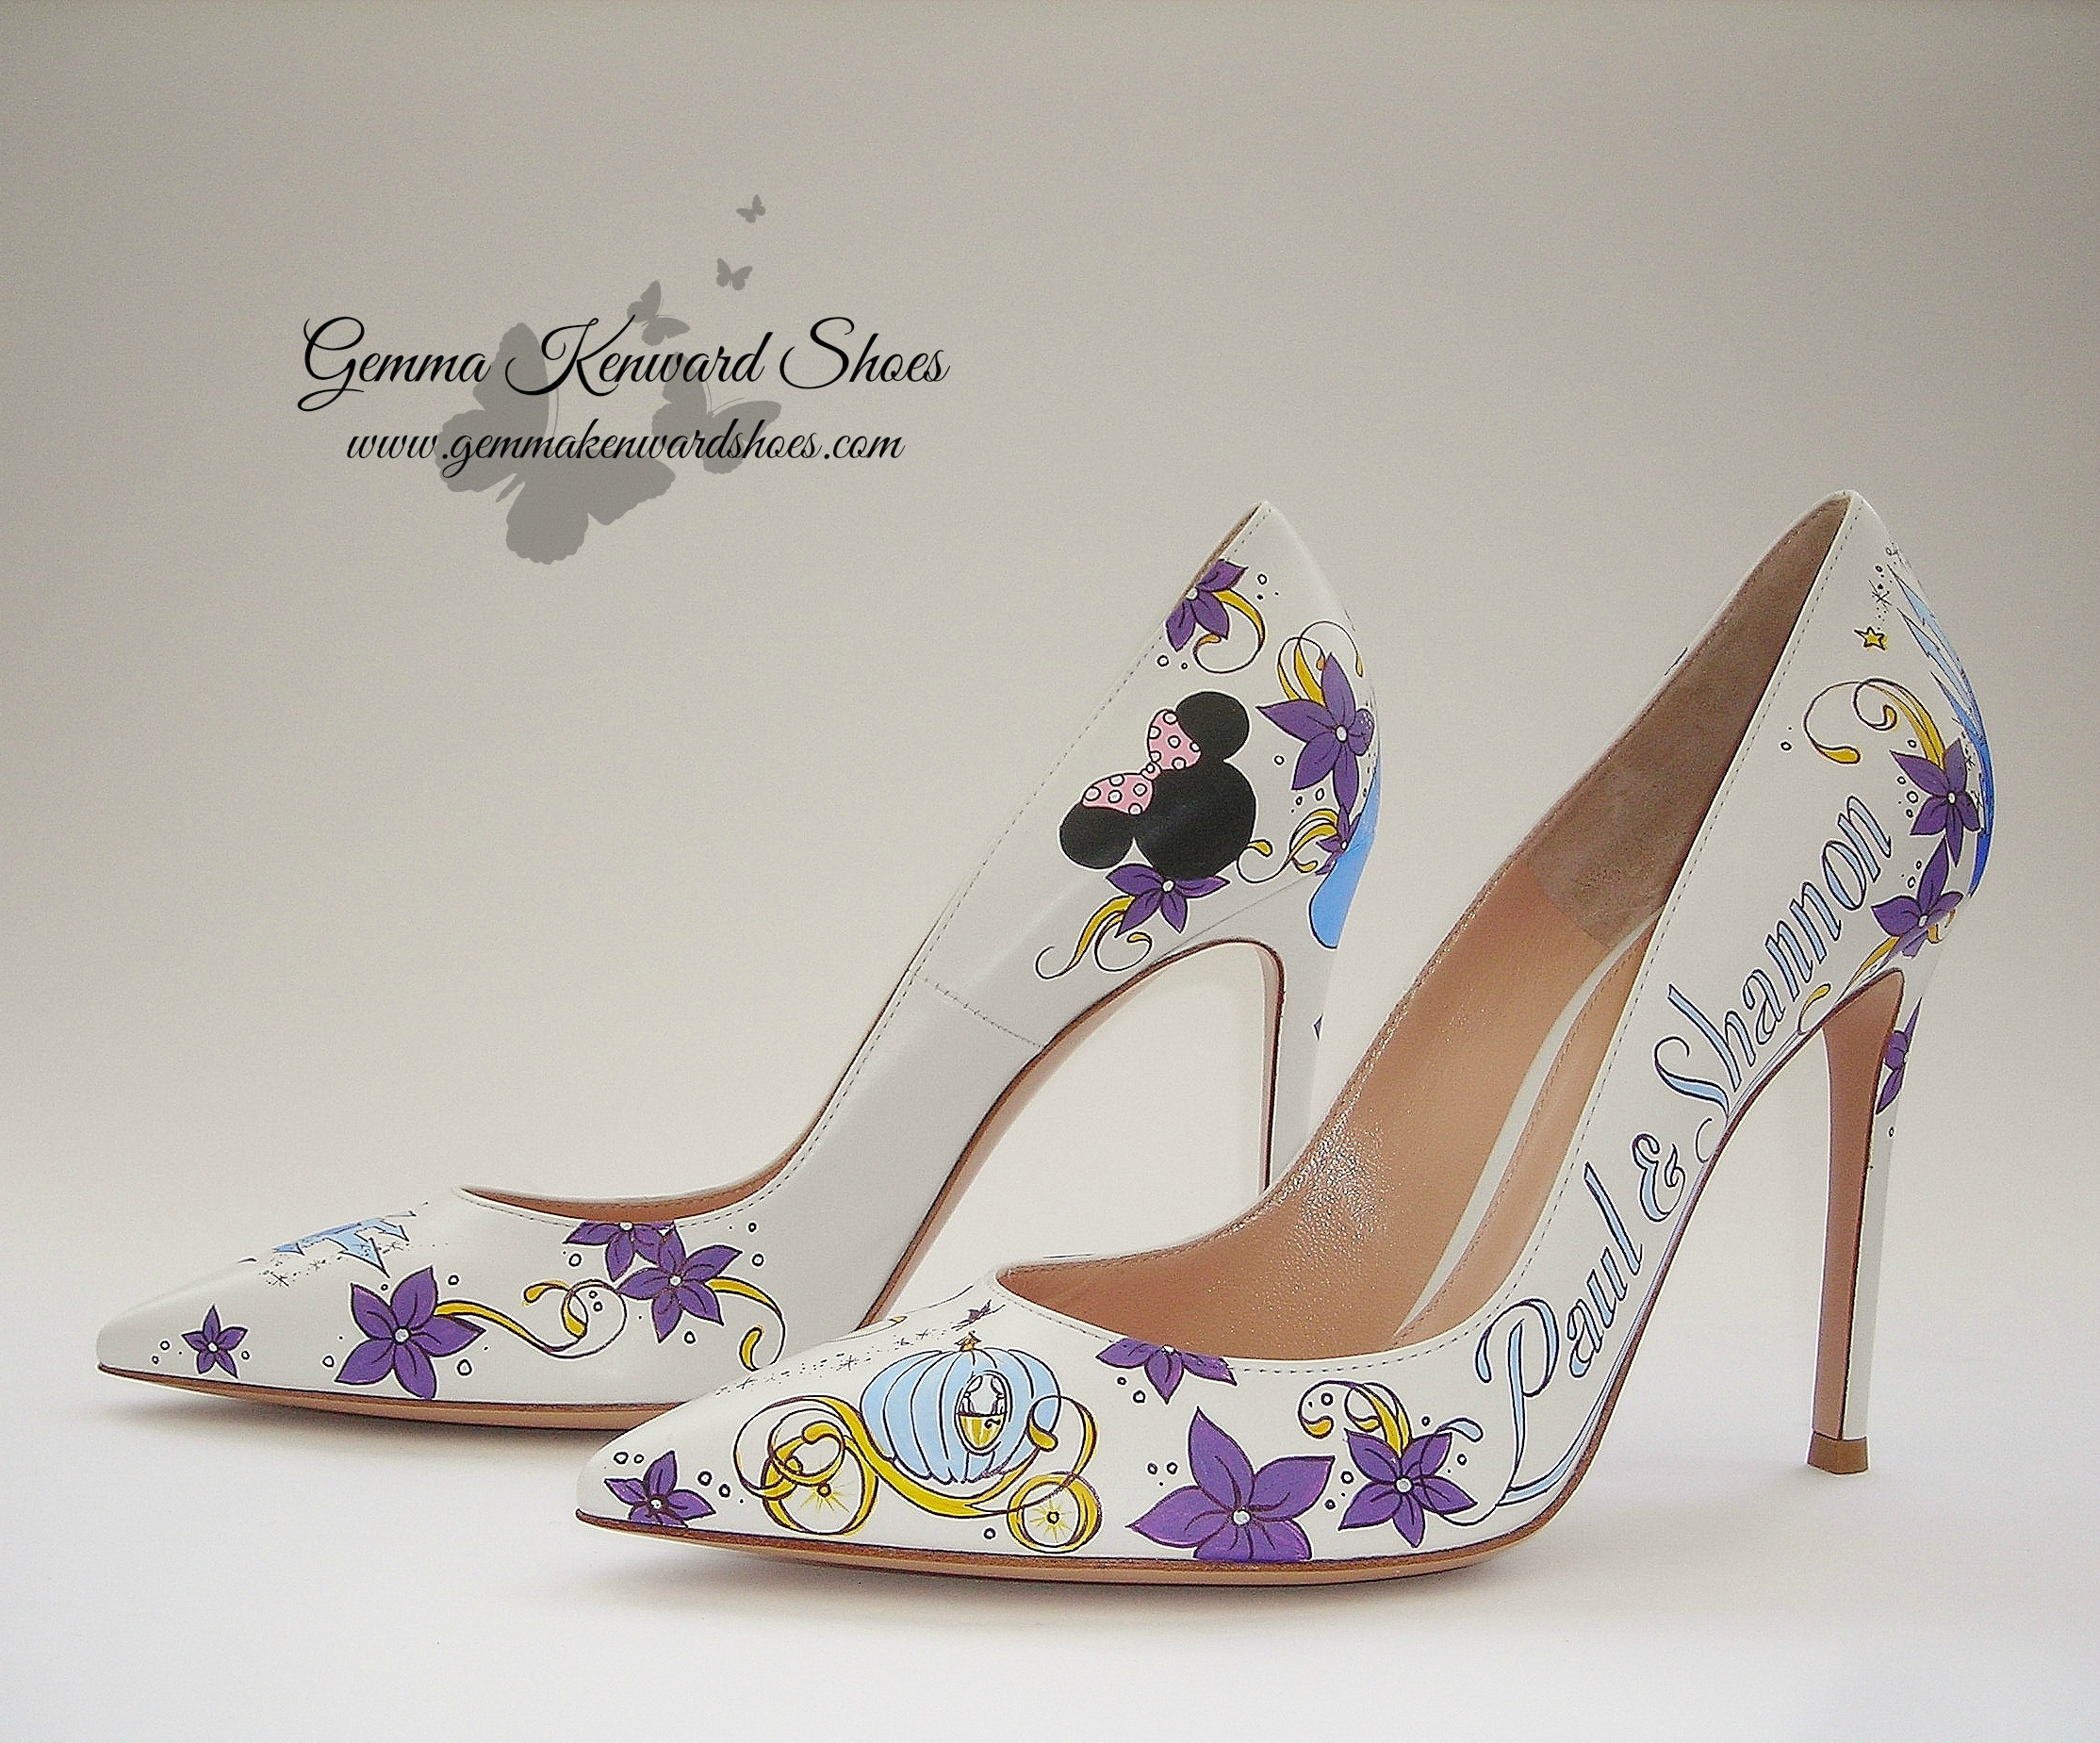 The Mickey and Minnie Mouse ears painted onto the backs of the shoes accentuated the Disney theme for the wedding.